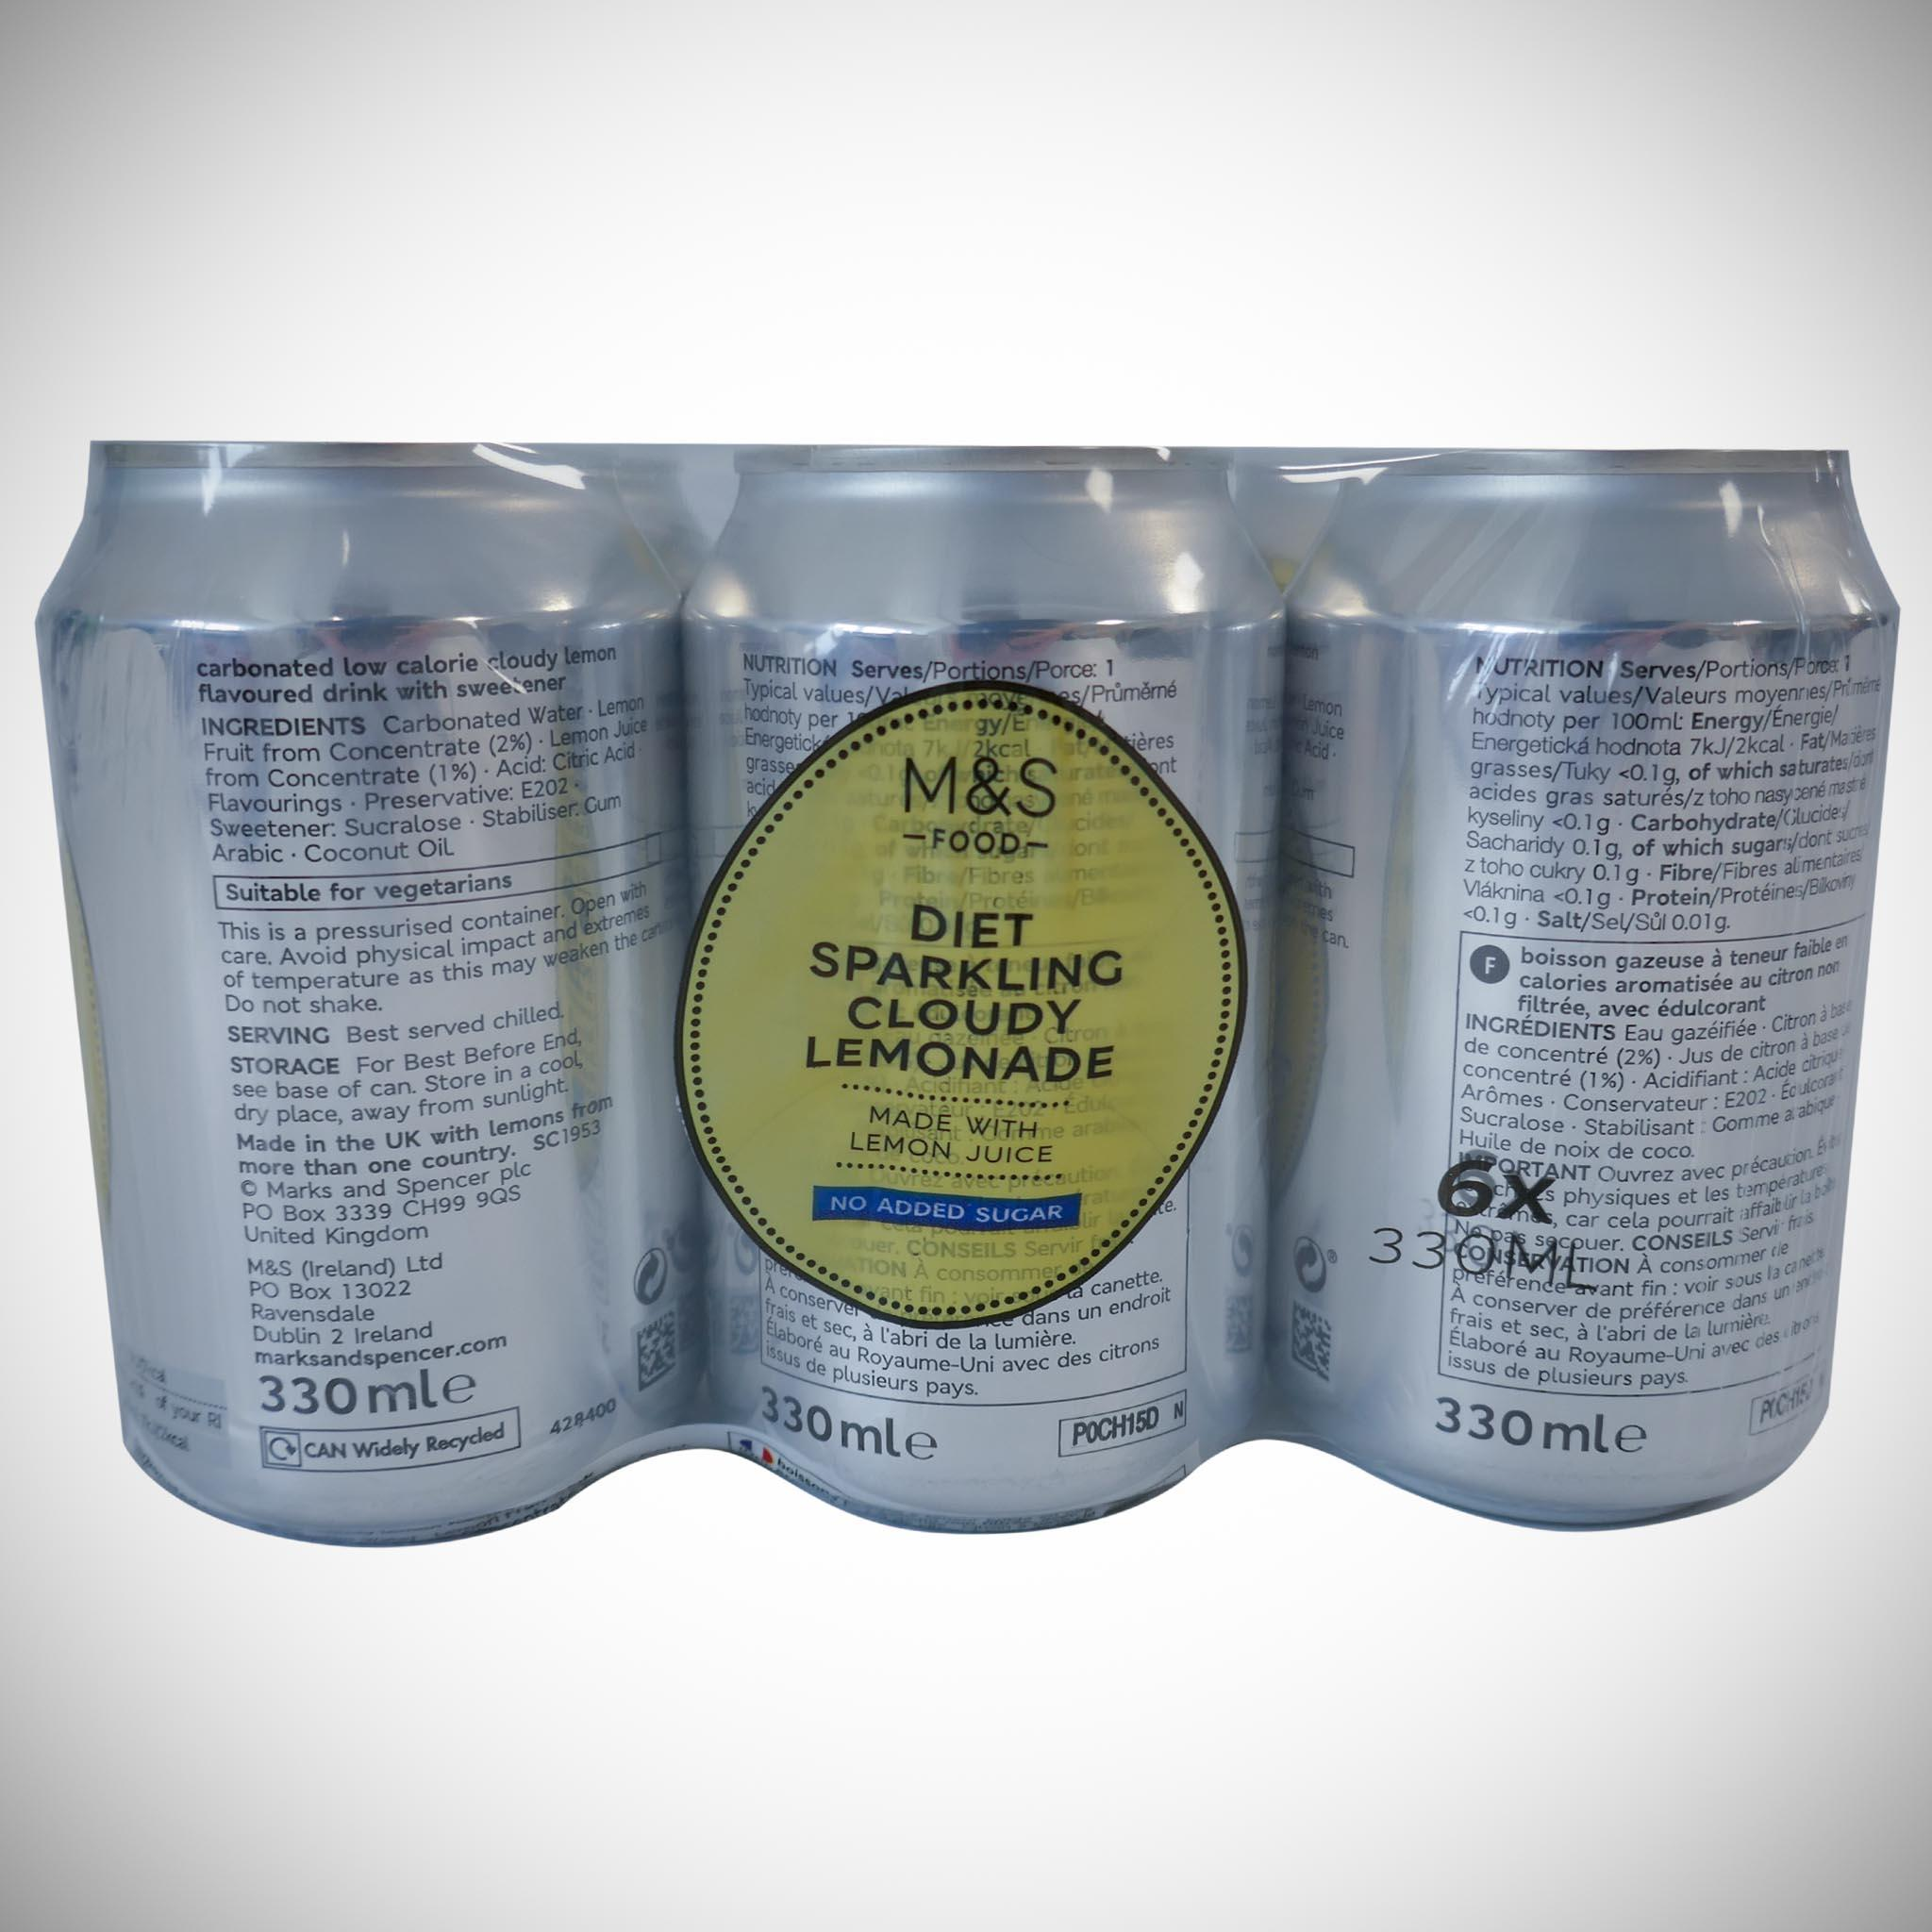 Diet Sparkling Cloudy Lemonade 6 x 330ml